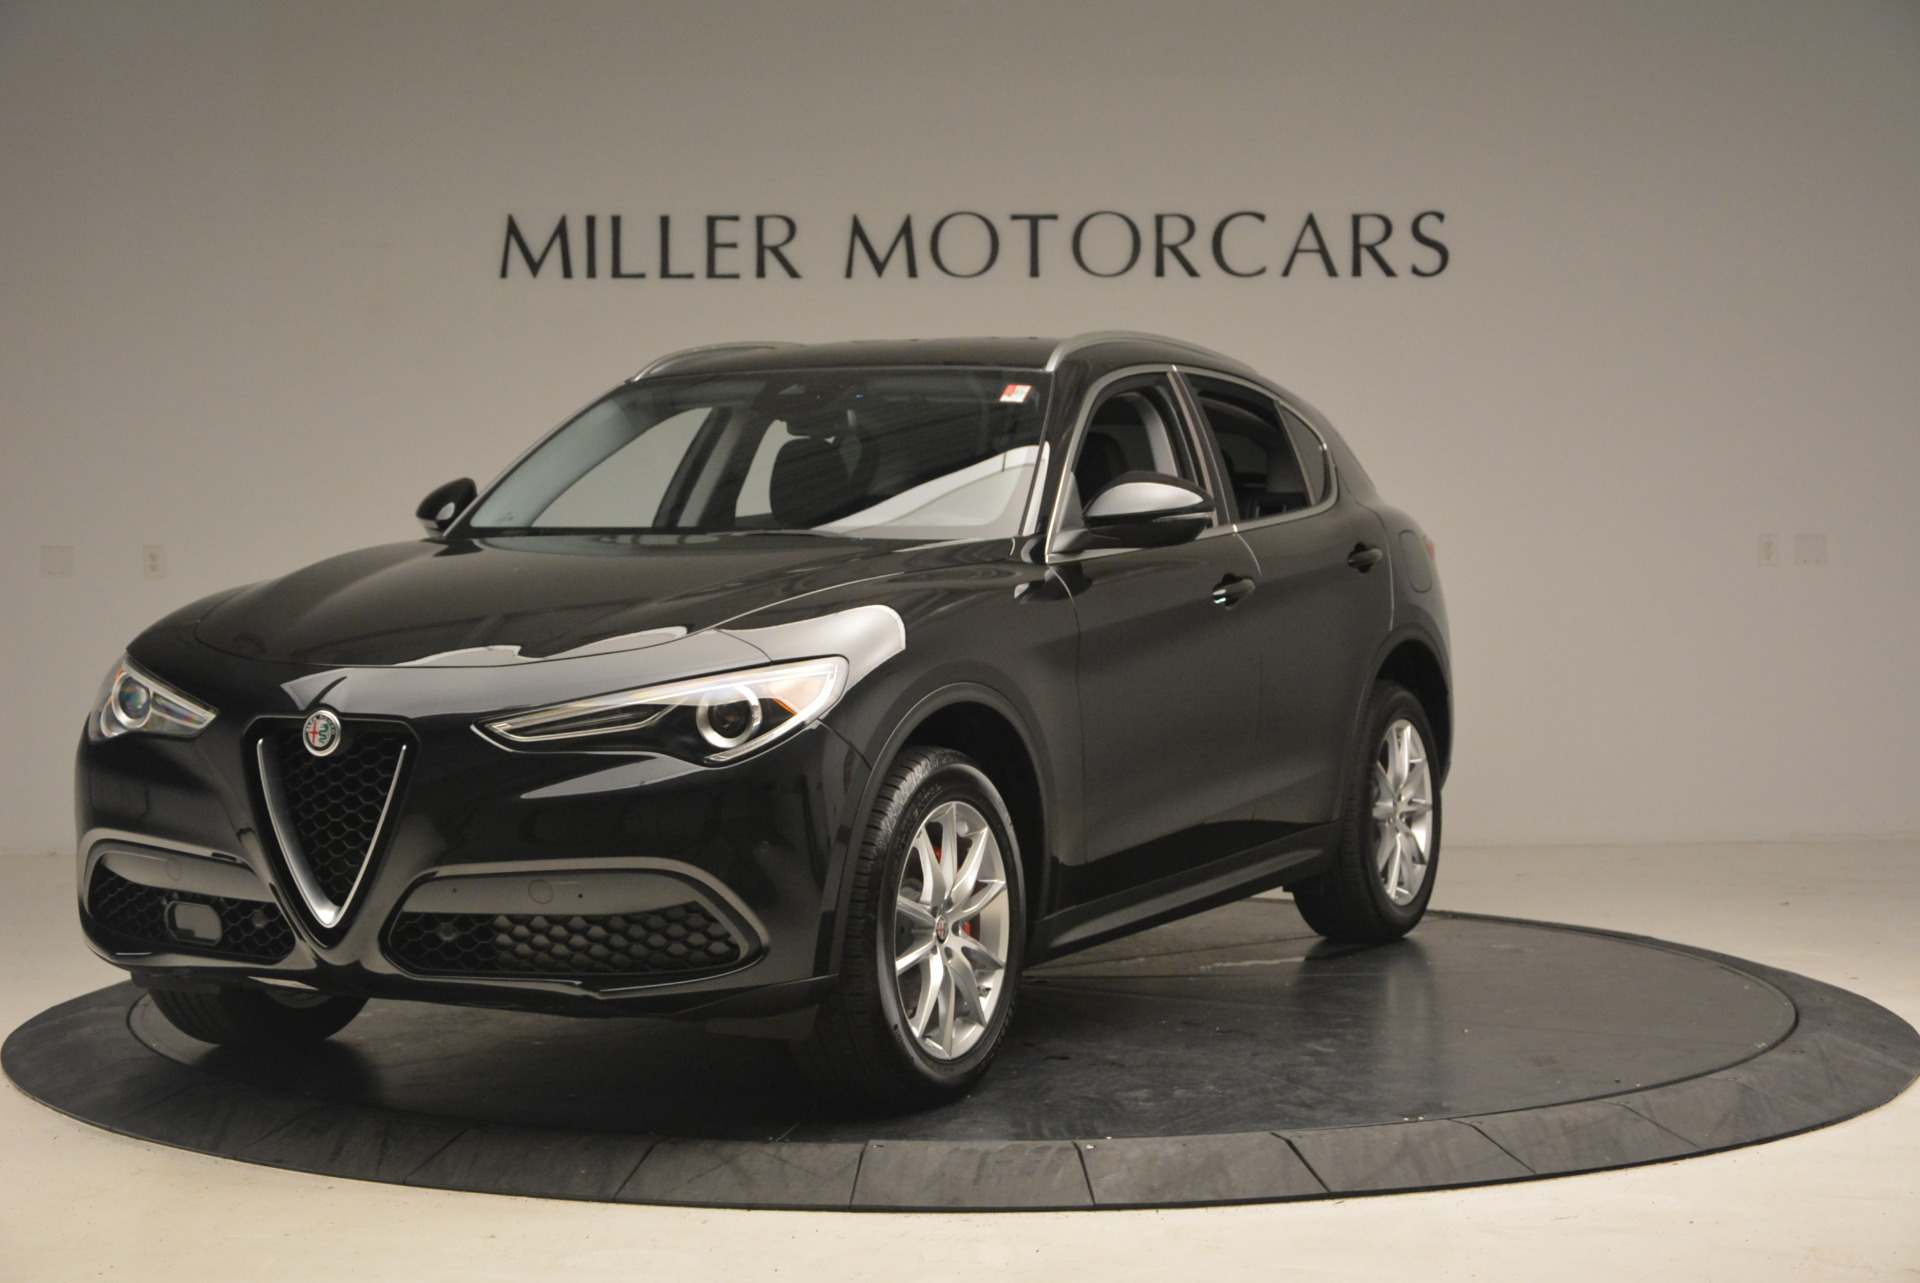 2018 alfa romeo stelvio ti q4 stock # l367 for sale near greenwich